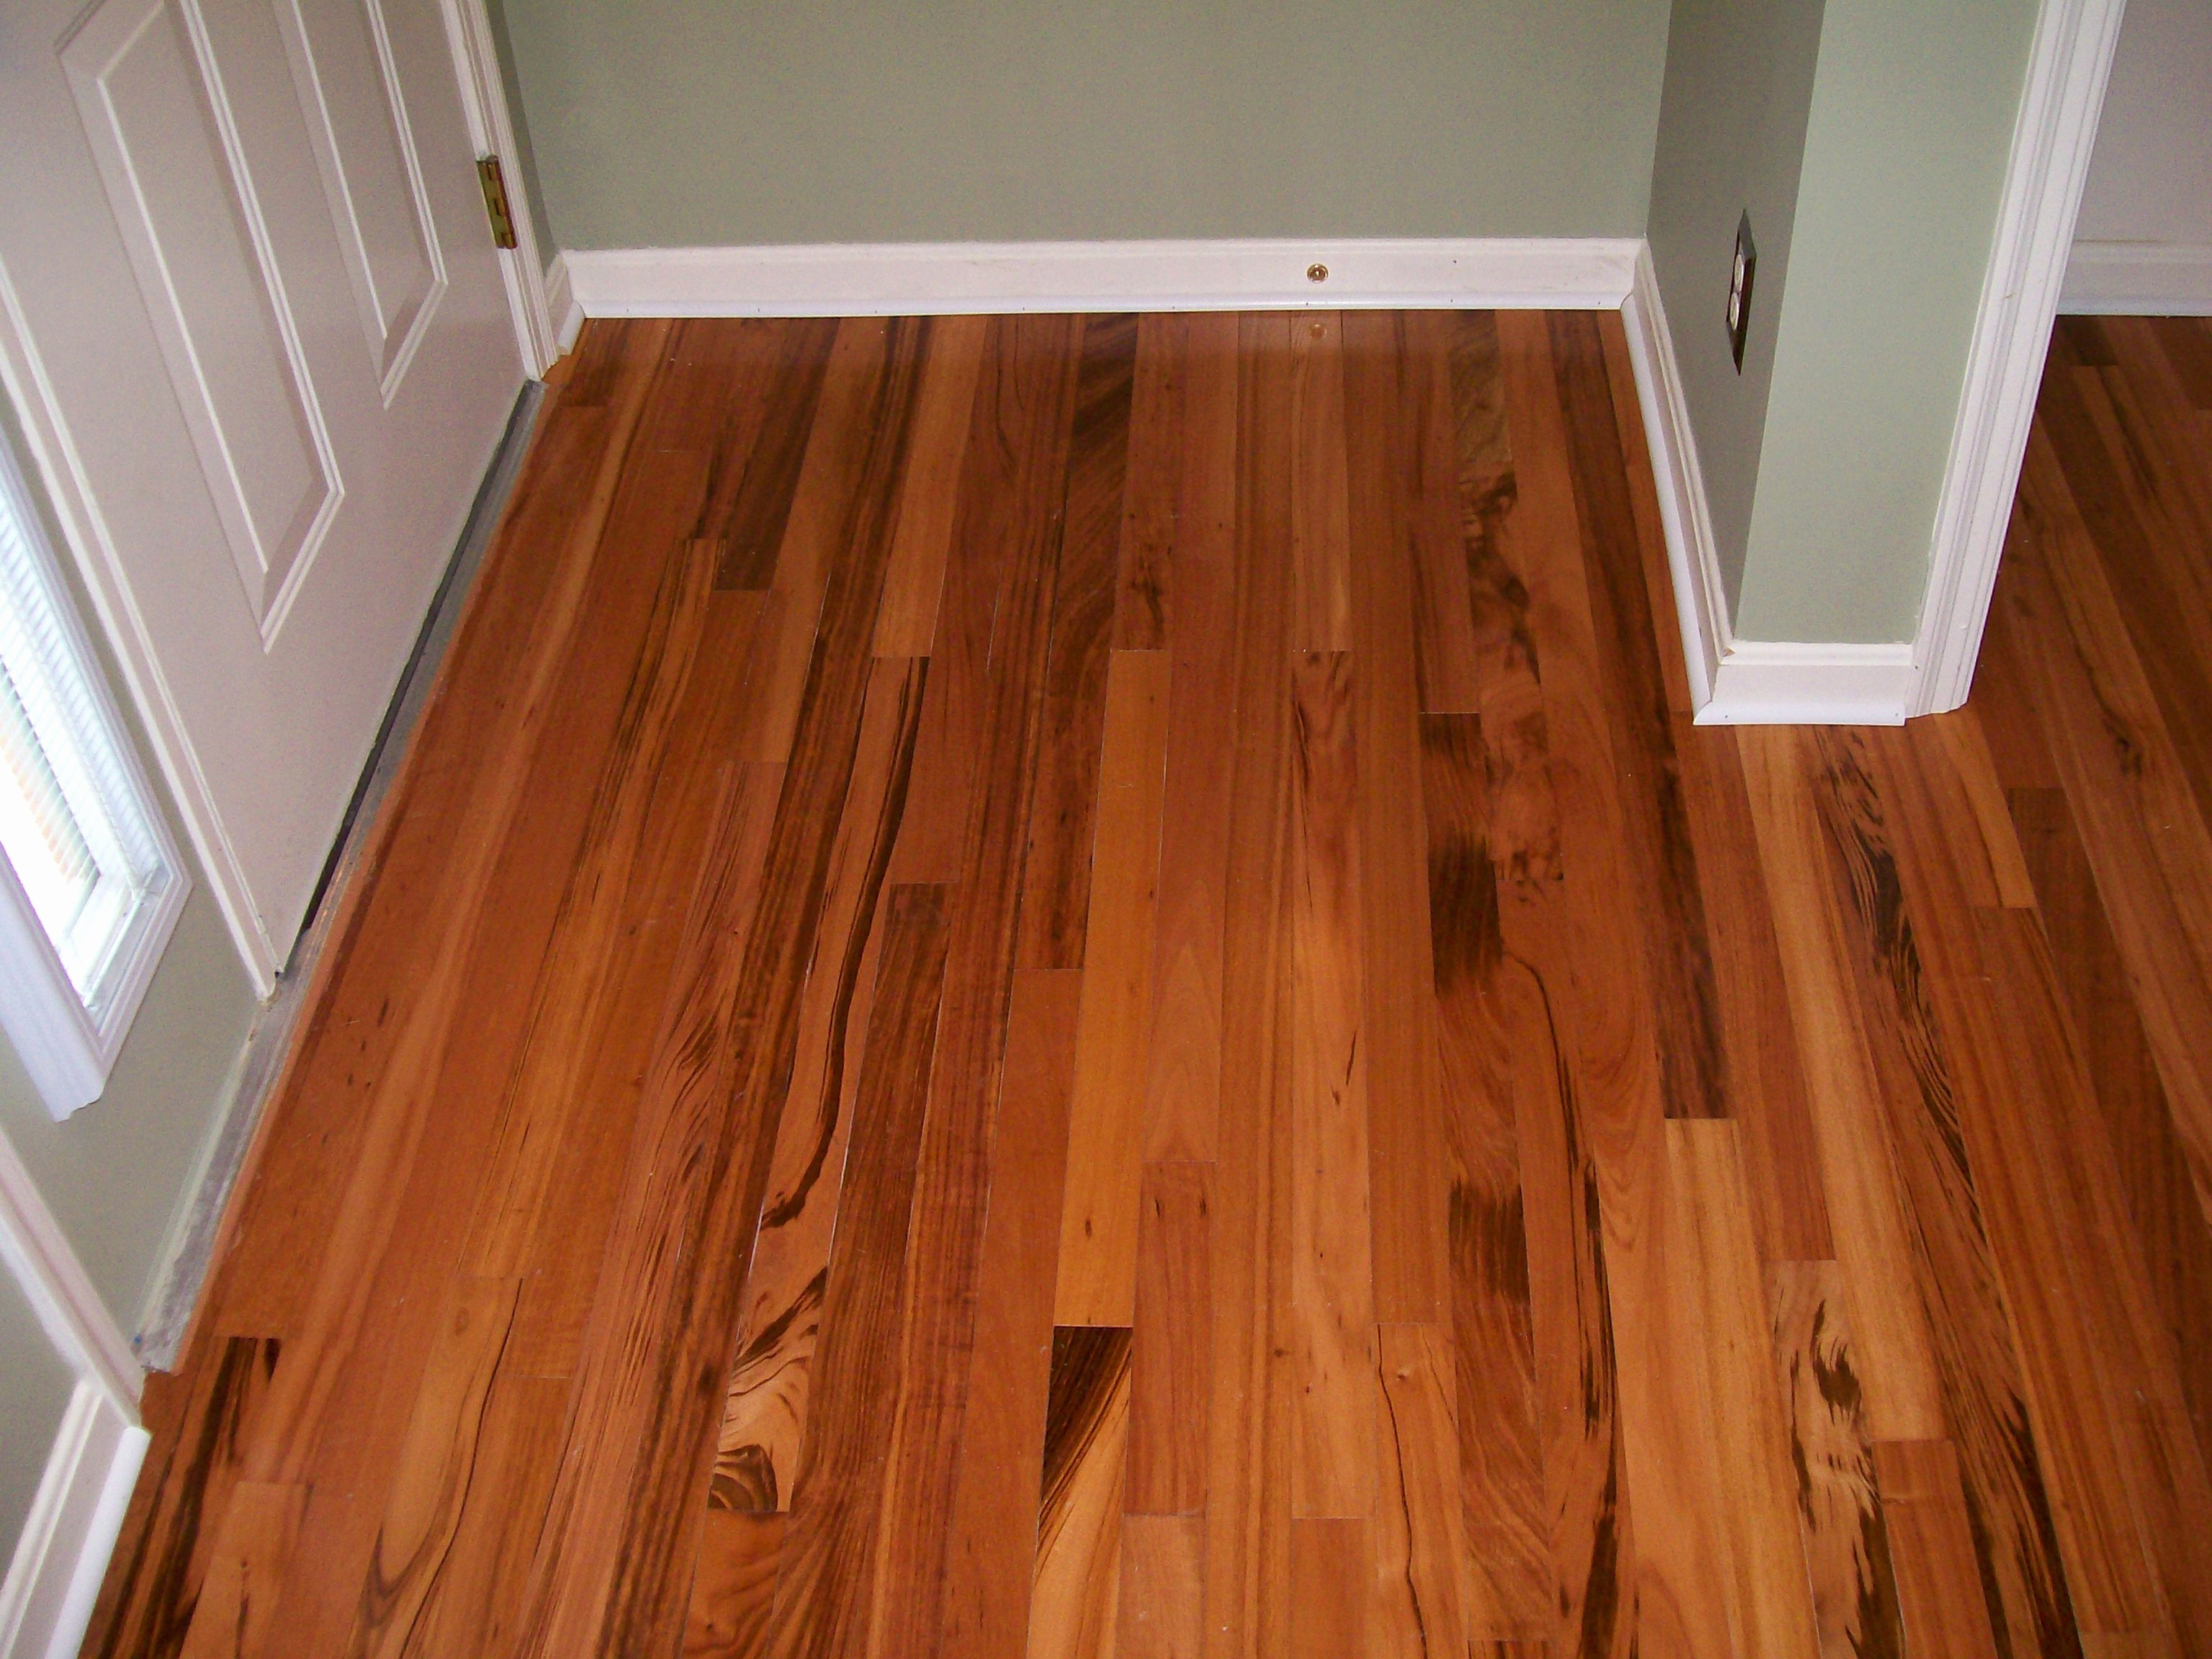 Laminate Flooring Labor Cost Per Square Foot | Floor Roma